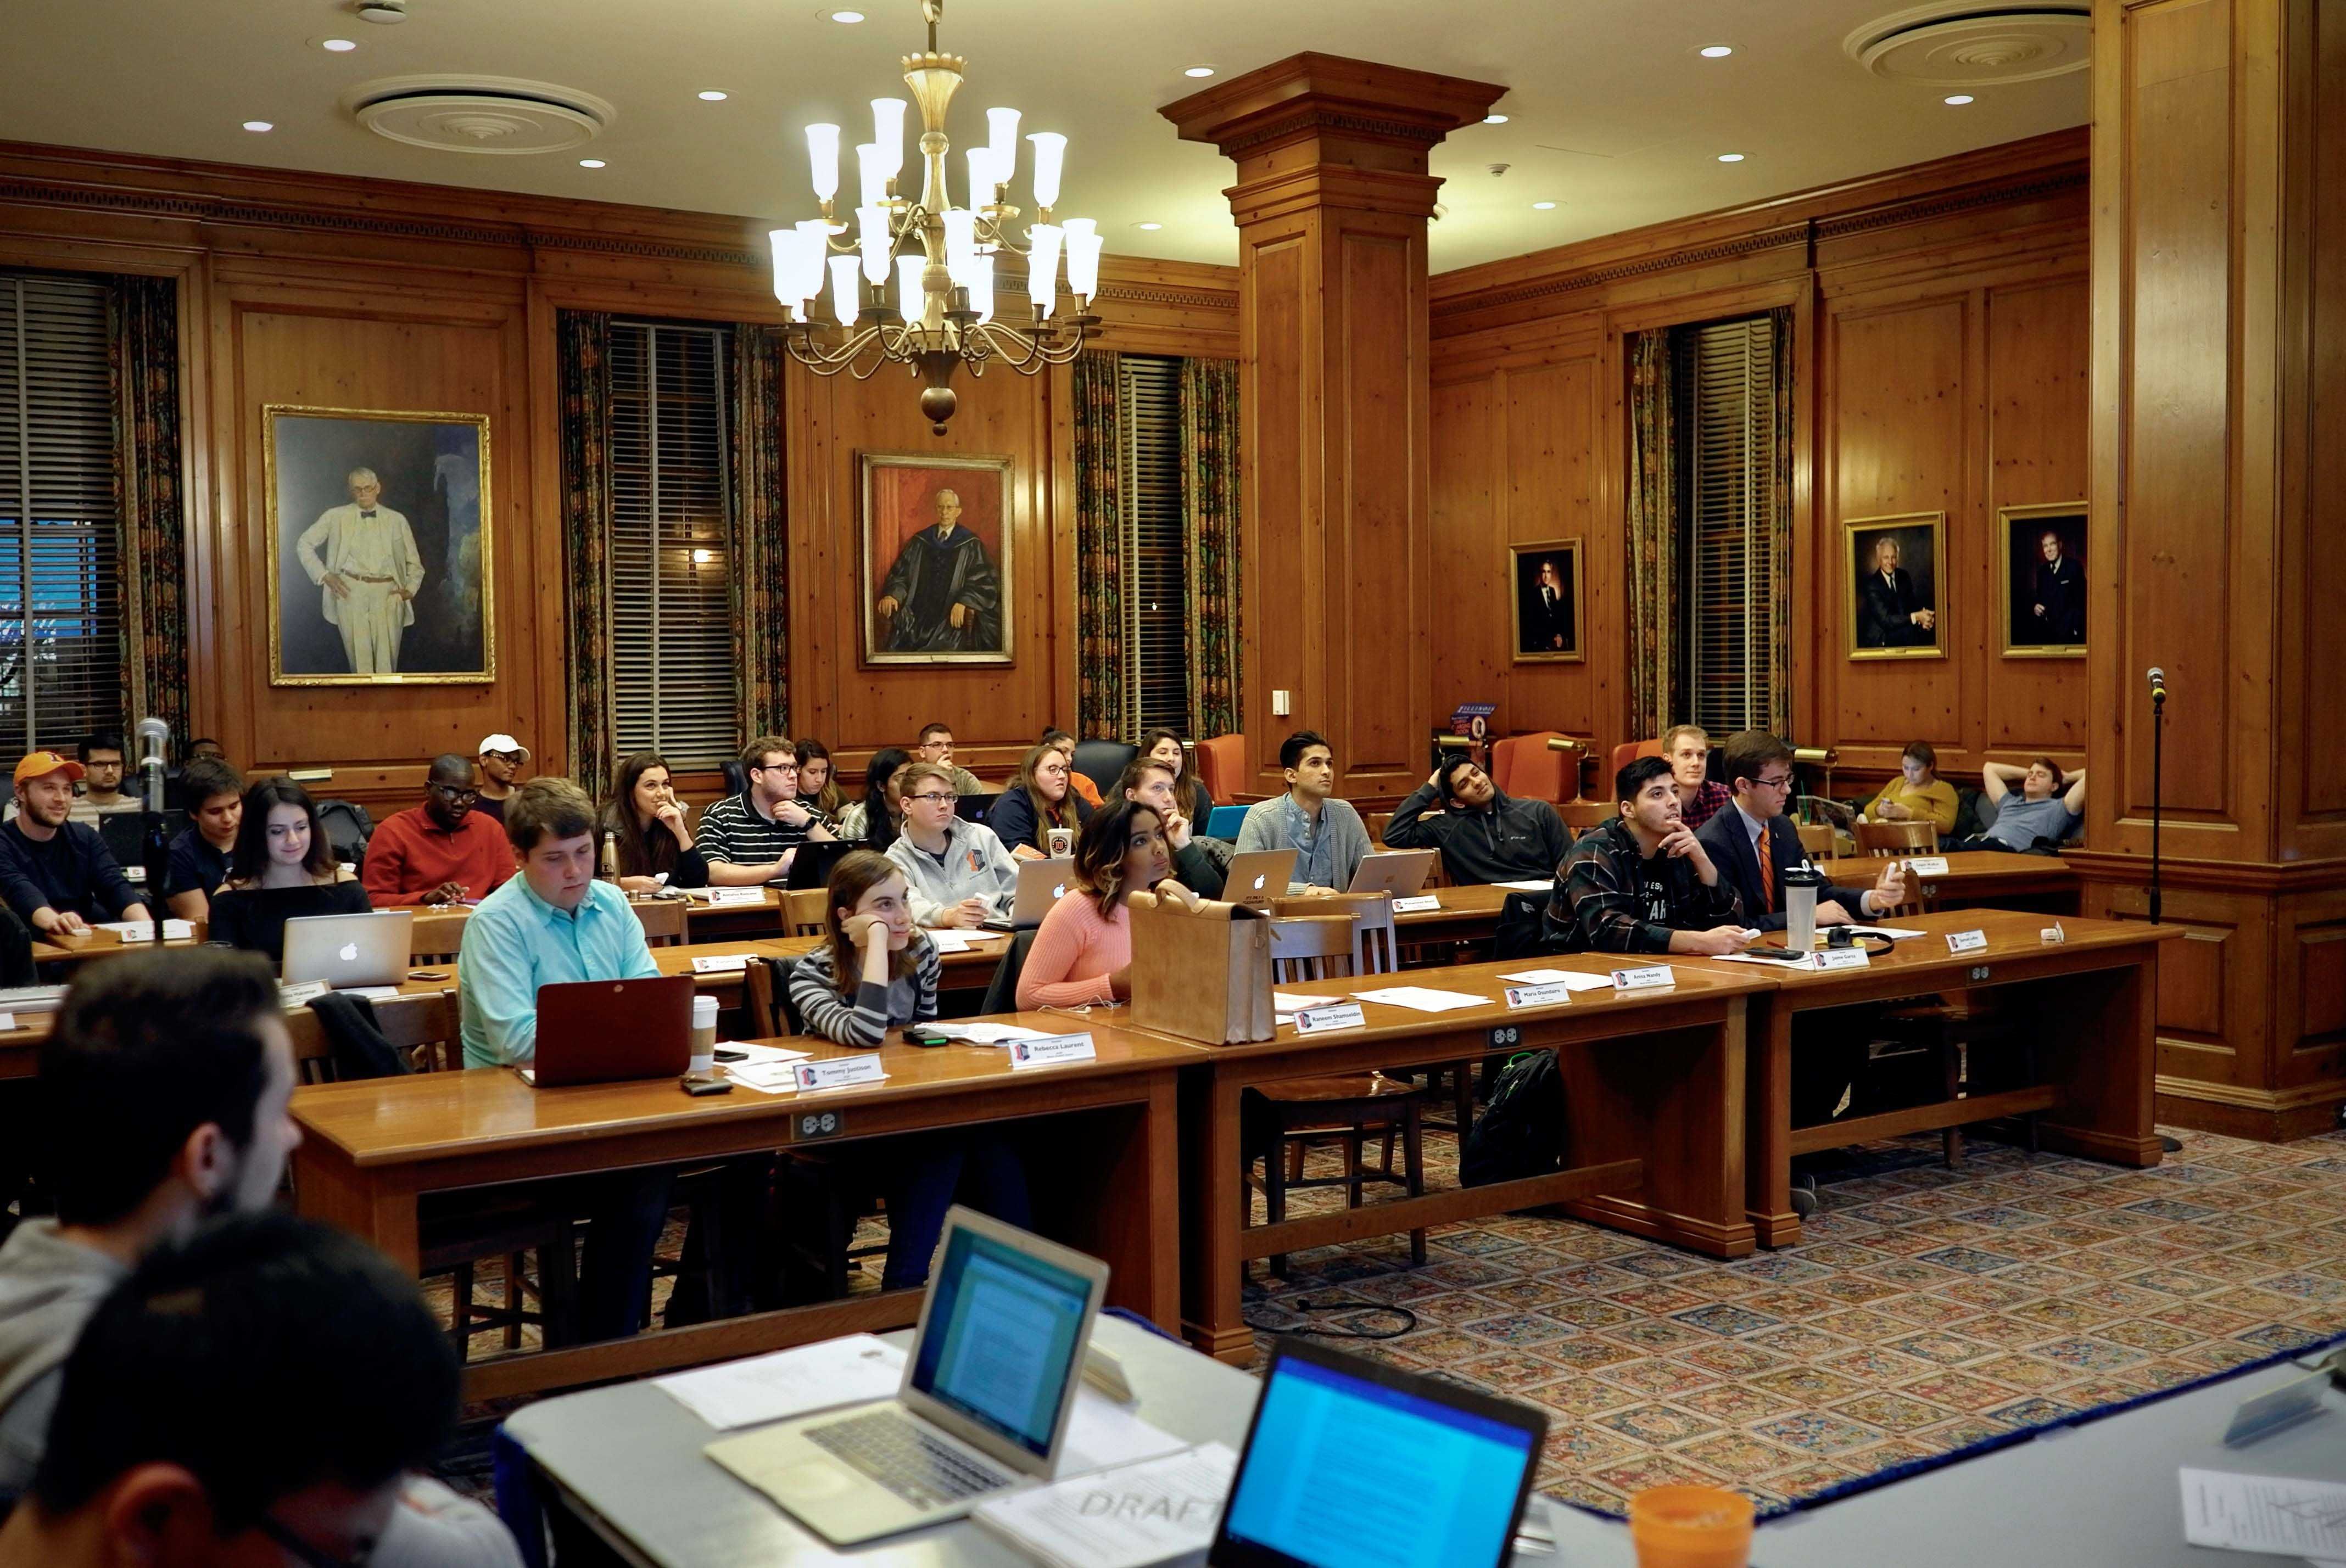 The Illinois Student Government held a meeting in the Pine Room of the Illini Union on Wednesday, Jan. 18th.